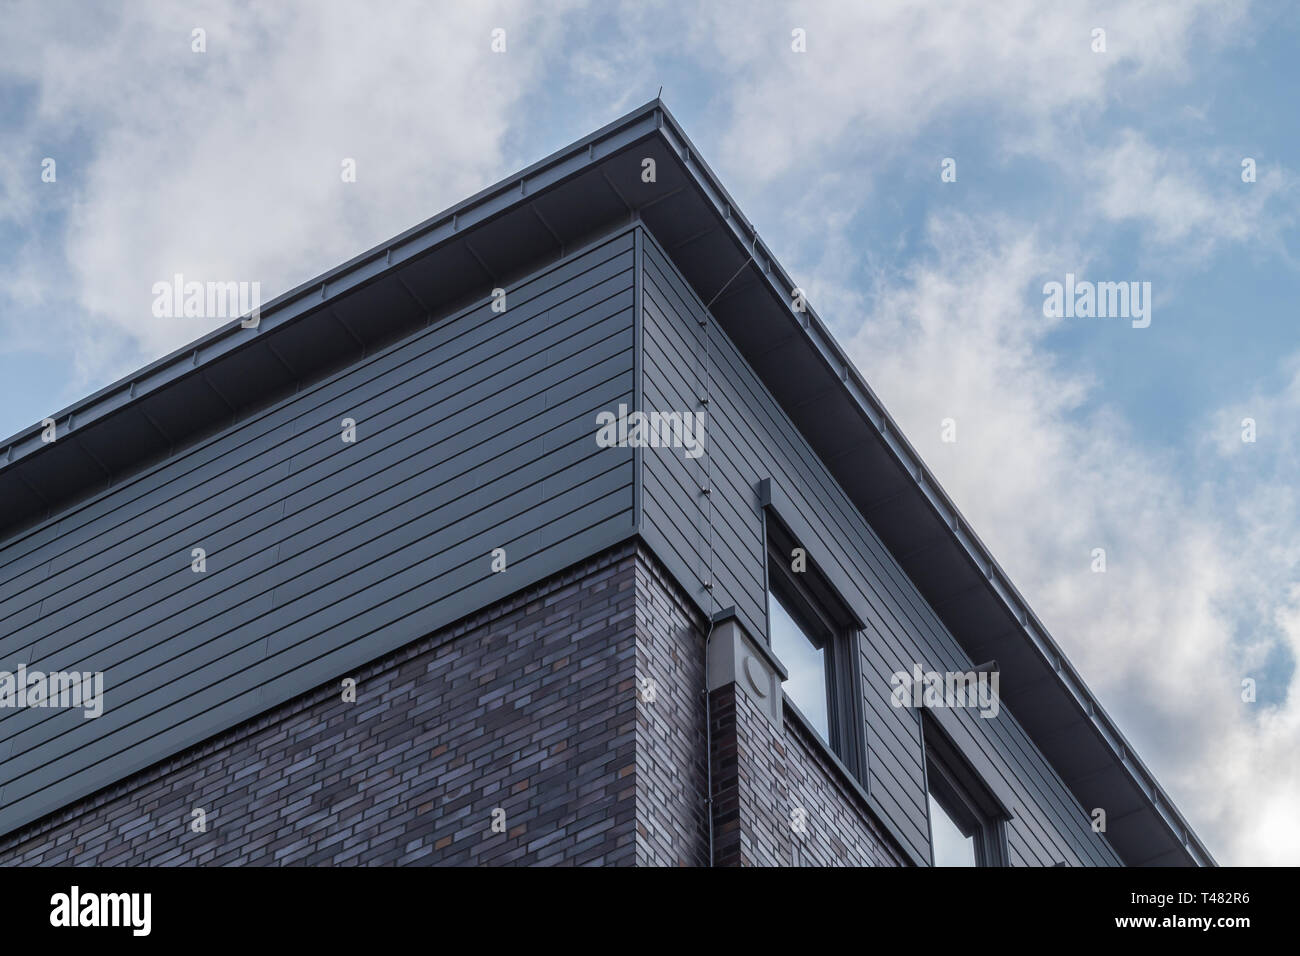 Looking up to the corner of modern office building. Urban architecture in the city. - Stock Image